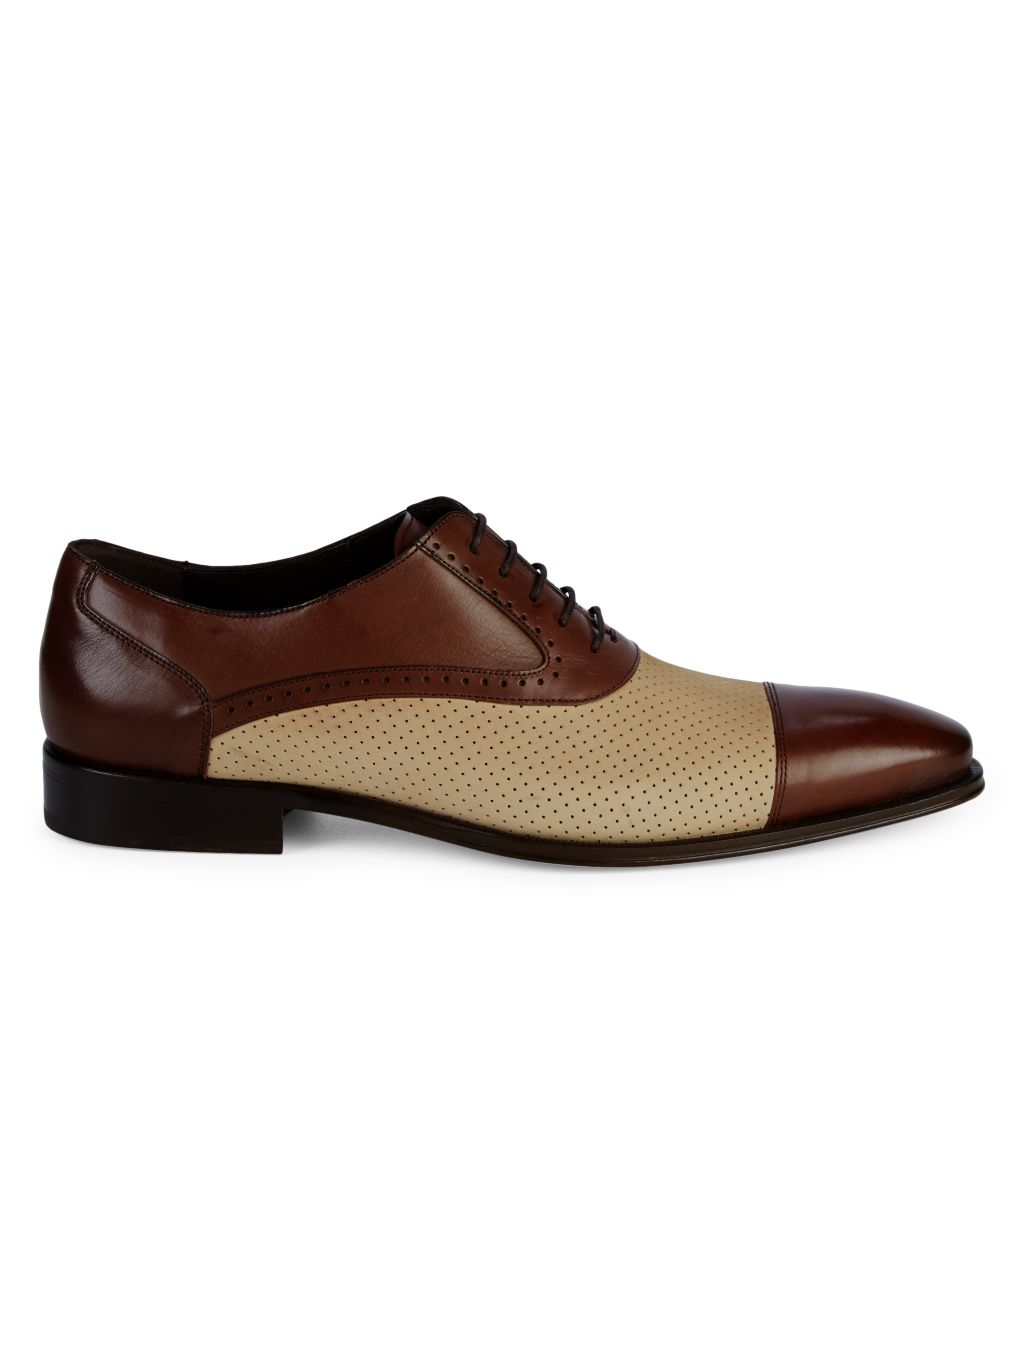 Mezlan Perforated Leather & Suede Oxfords